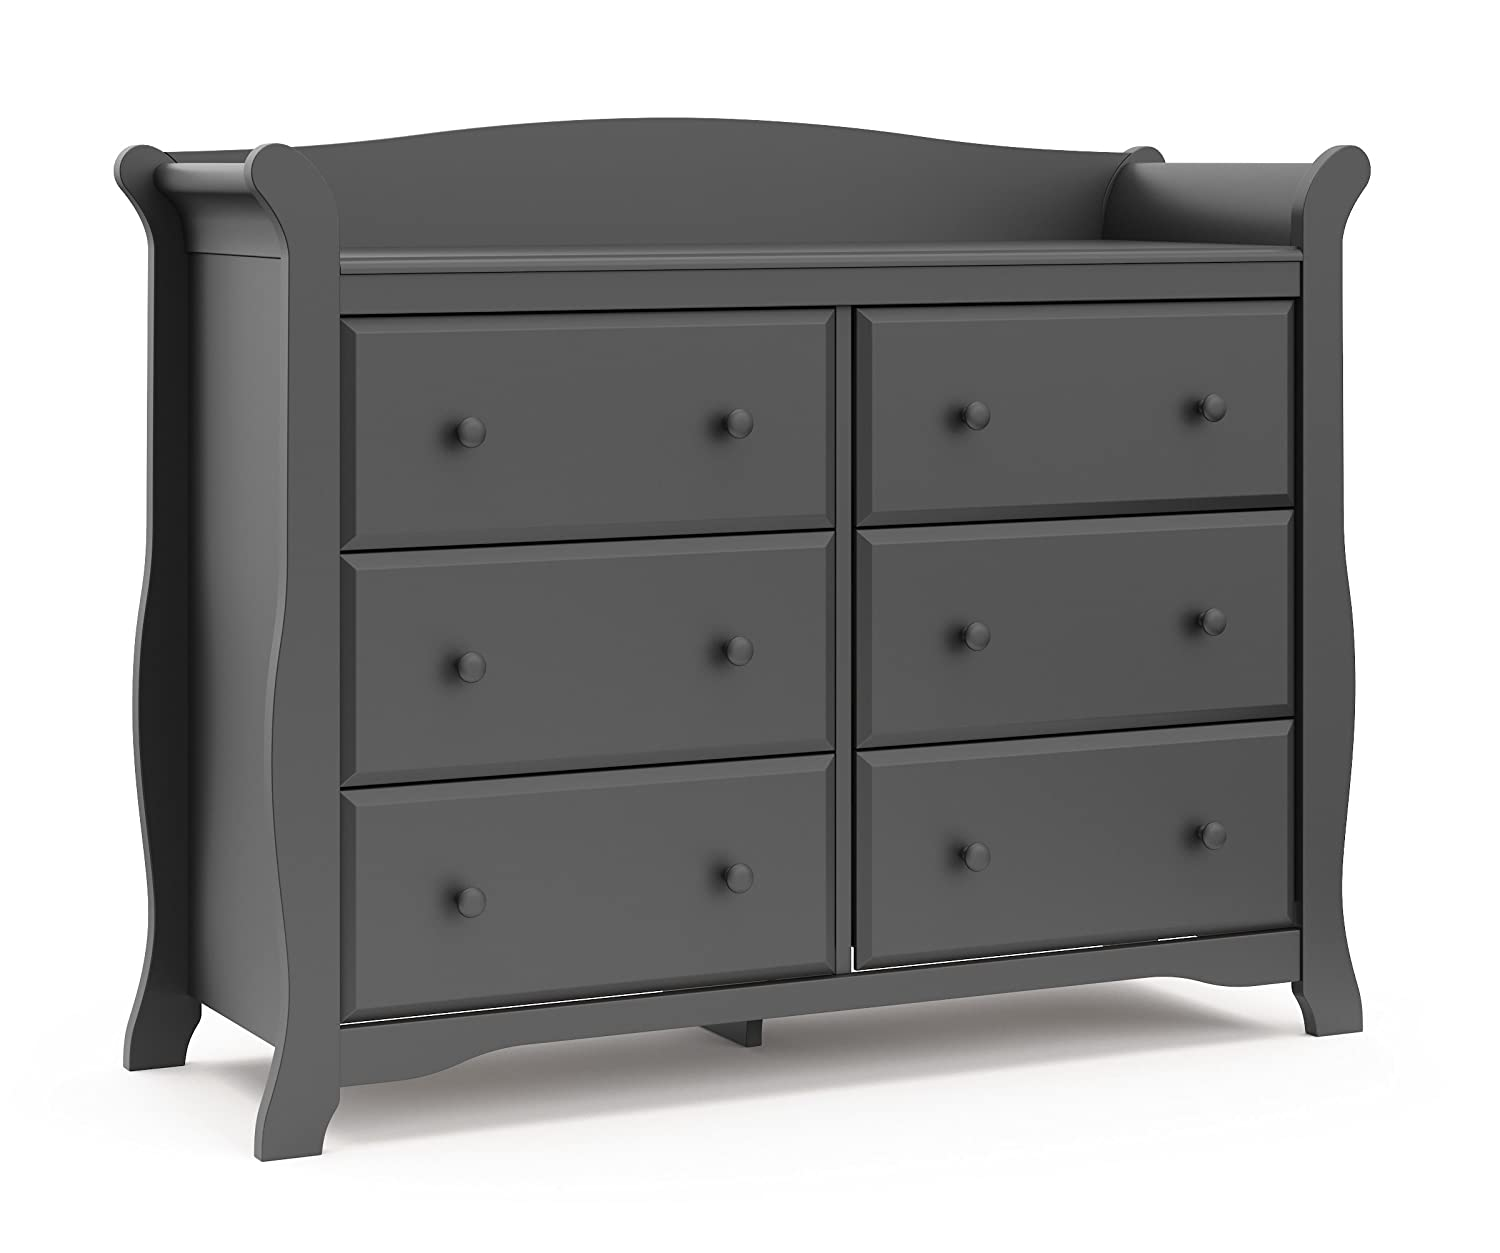 Storkcraft Avalon 6 Drawer Universal Dresser, Gray